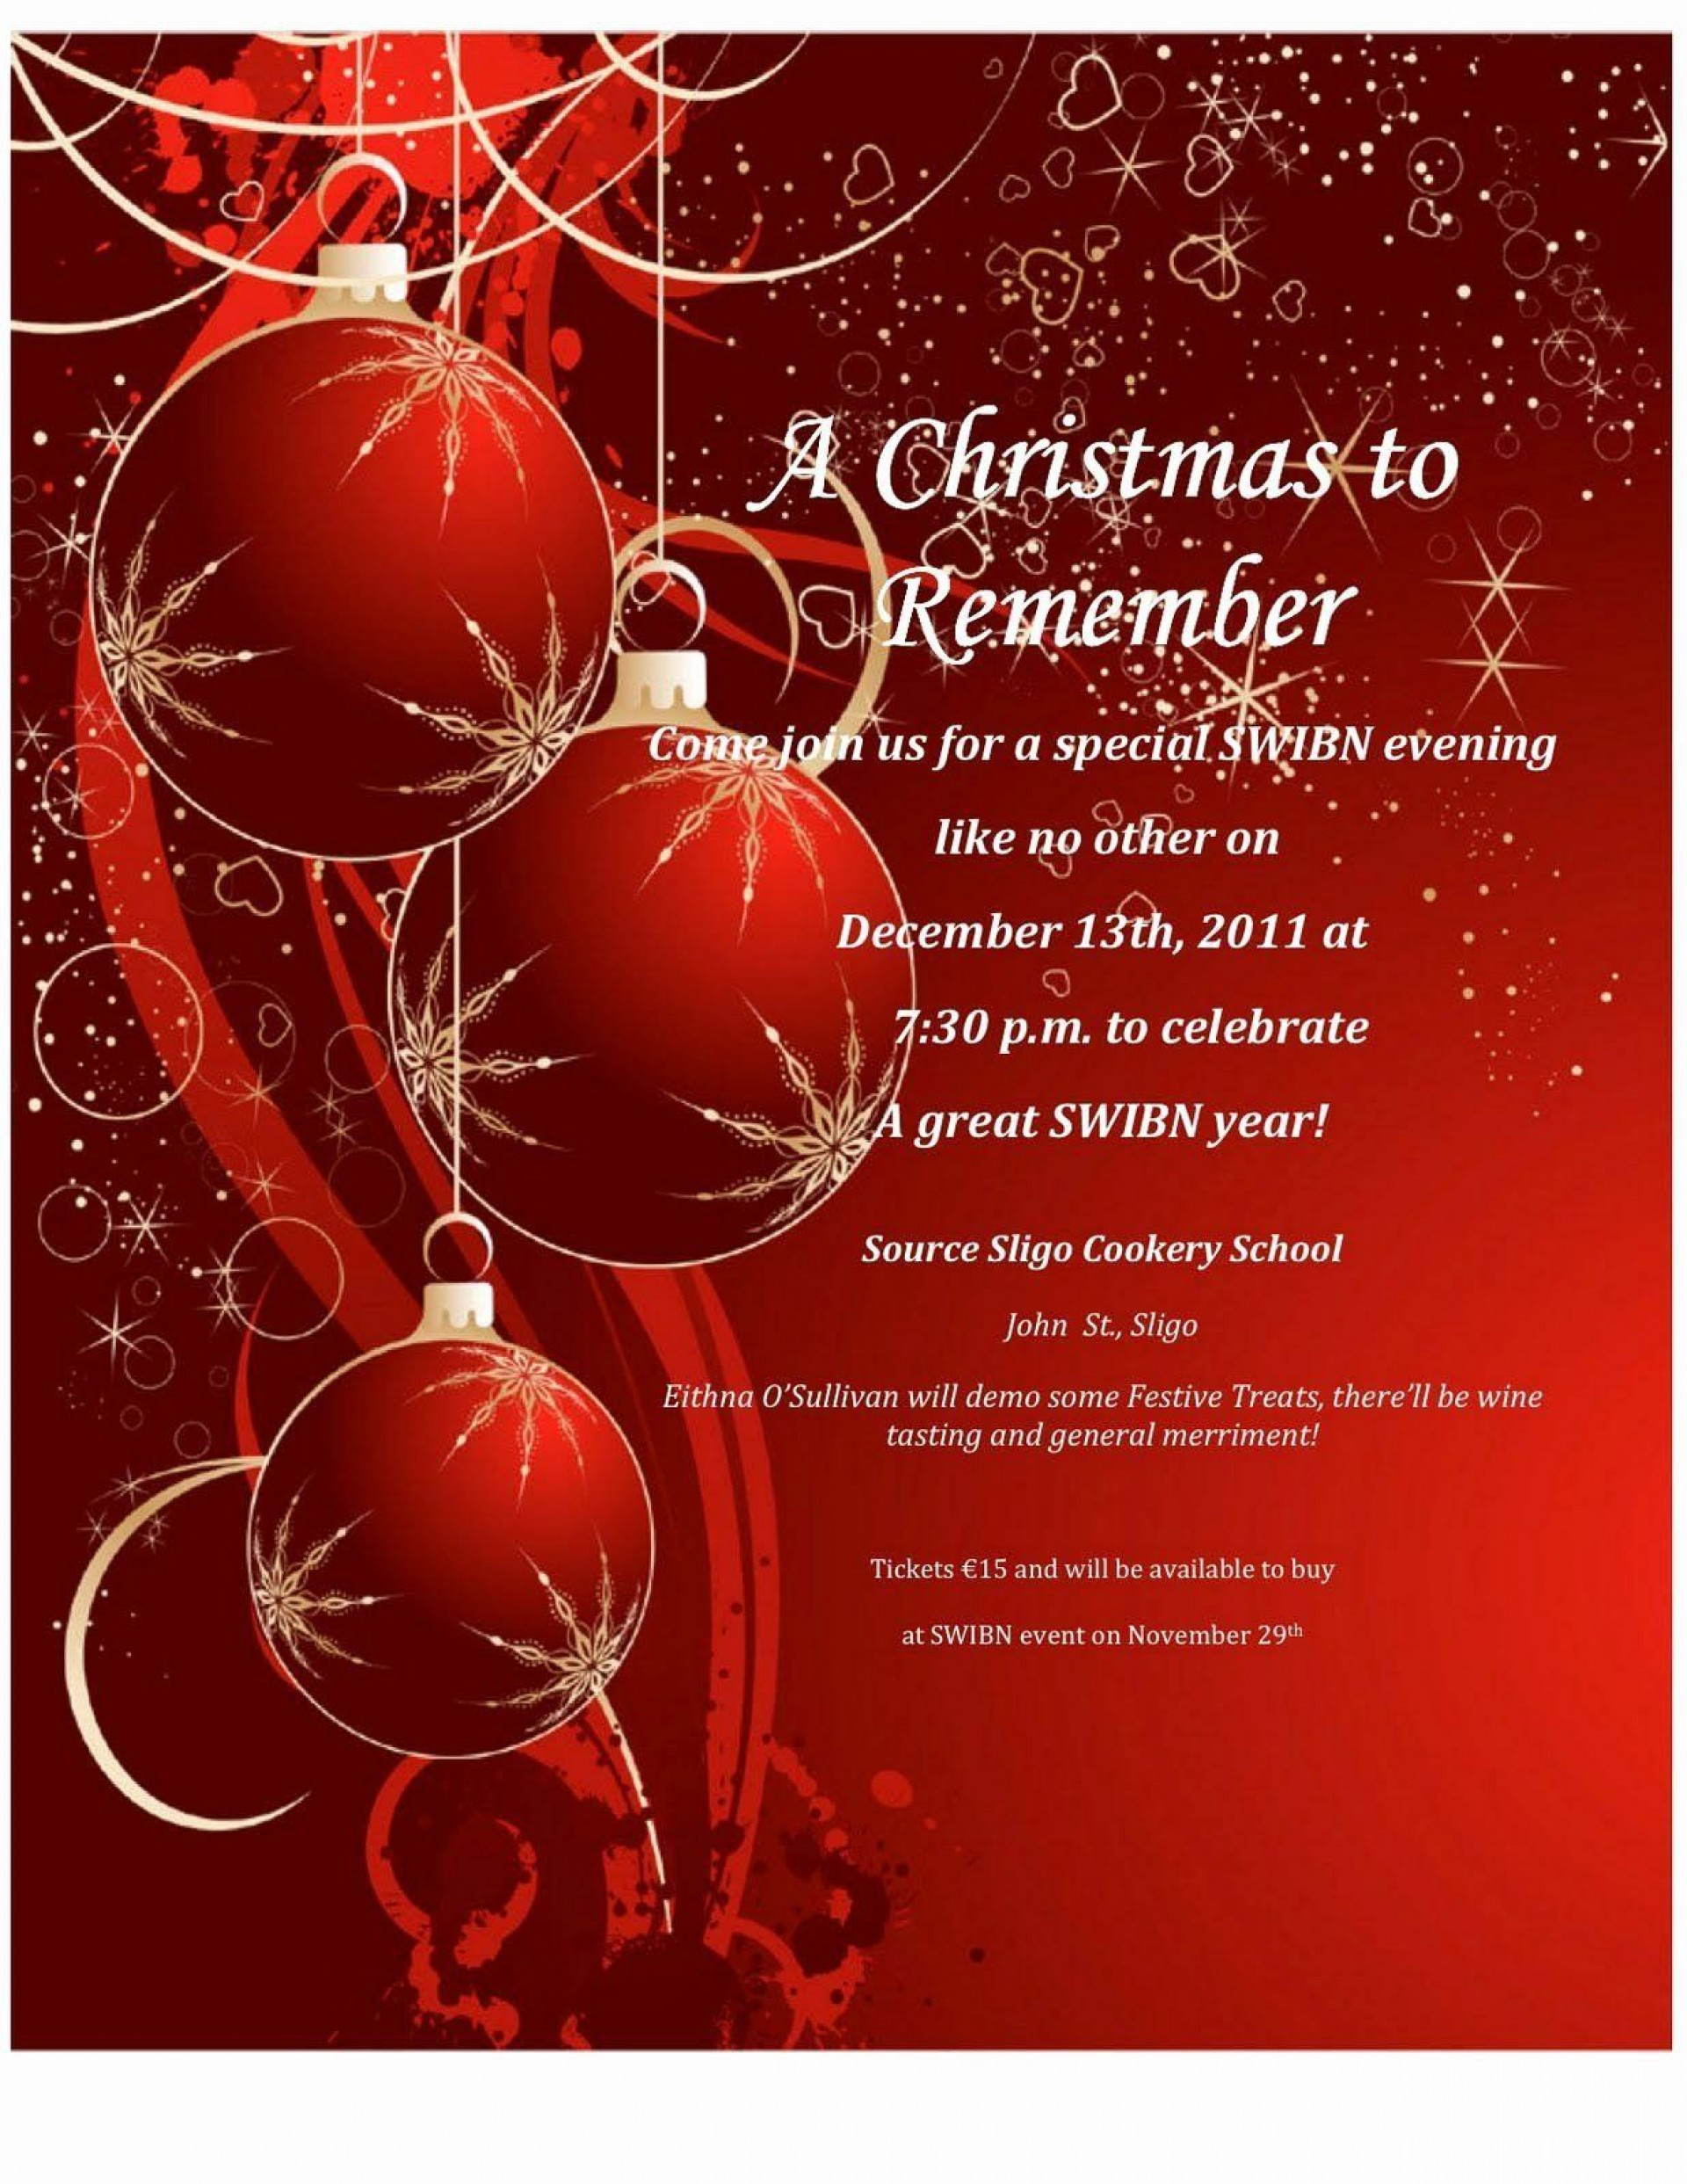 008 Exceptional Christma Party Invite Template Word Picture  Holiday Free Invitation Wording Example1920